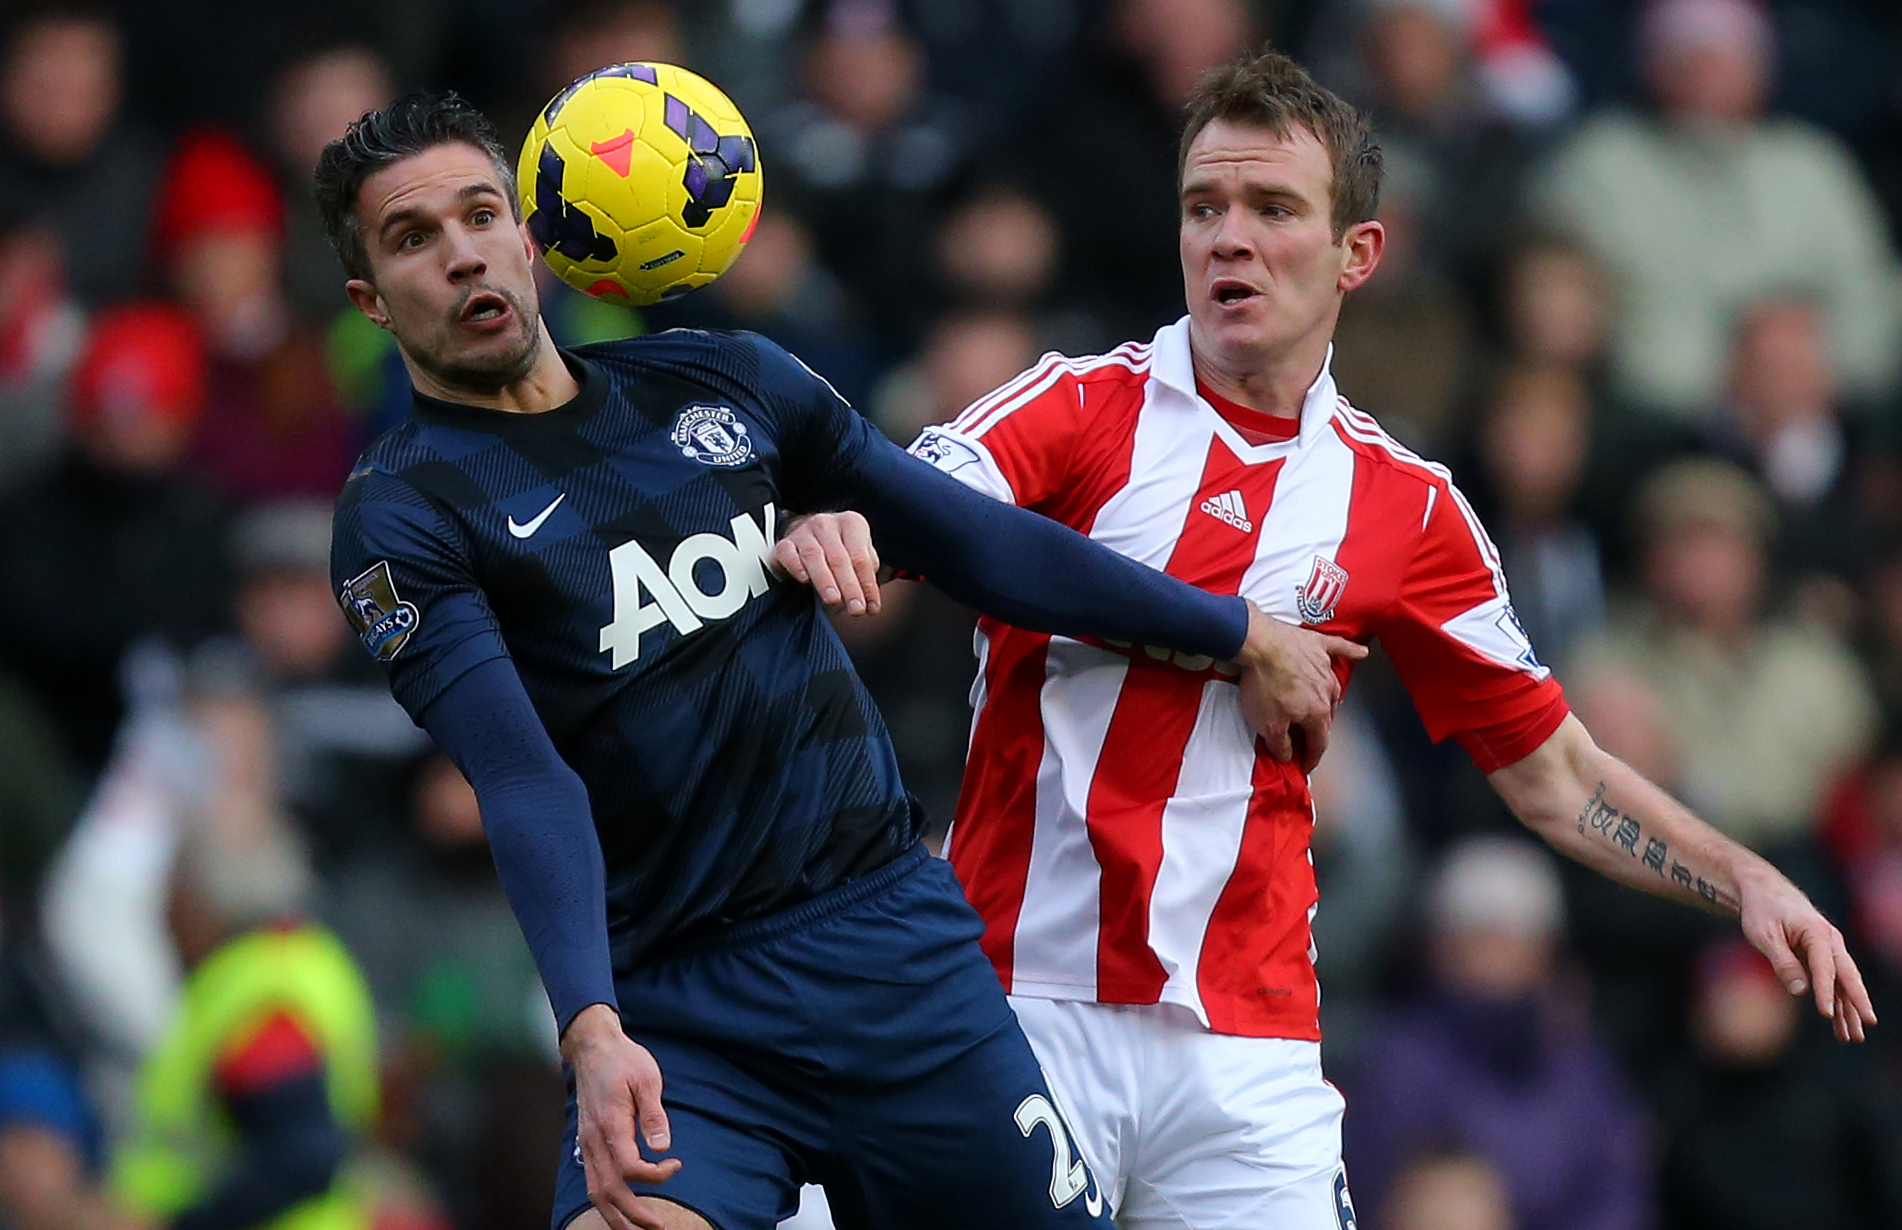 van Persie competing for the ball against Whelan. Image: PA